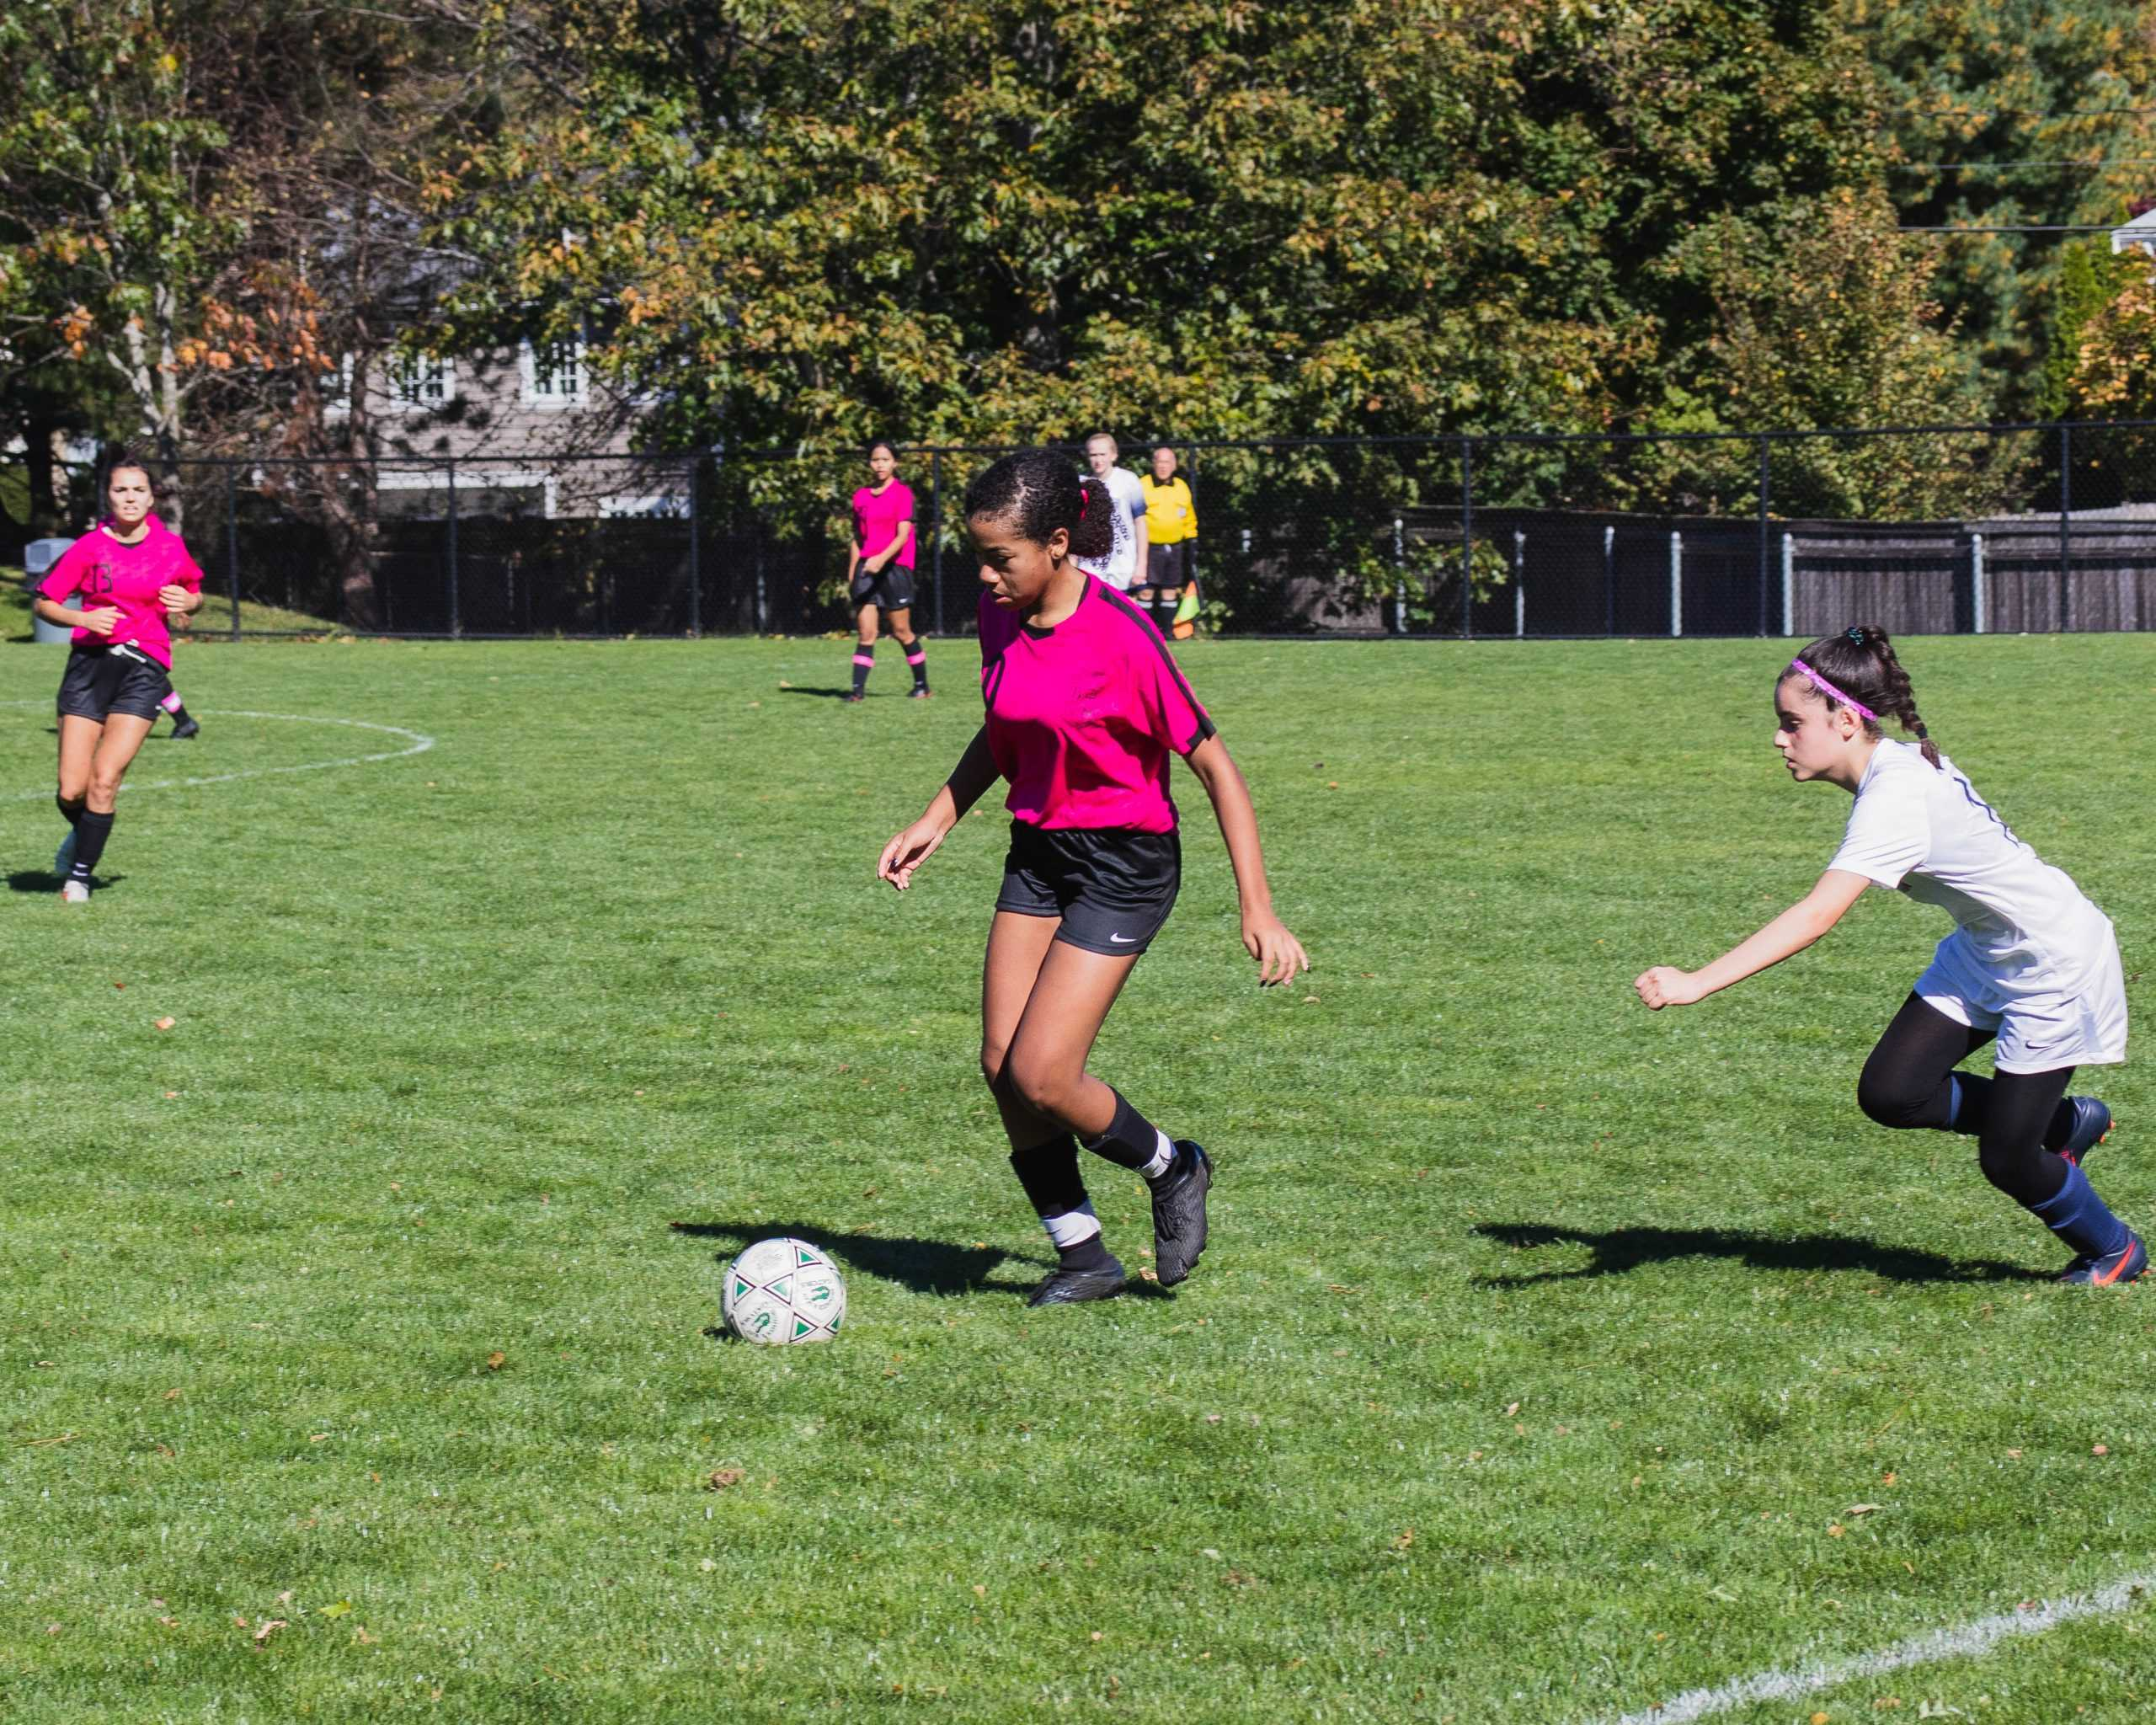 Students%2C+faculty%2C+and+alums+enjoyed+exciting+games+at+Orr+Field.